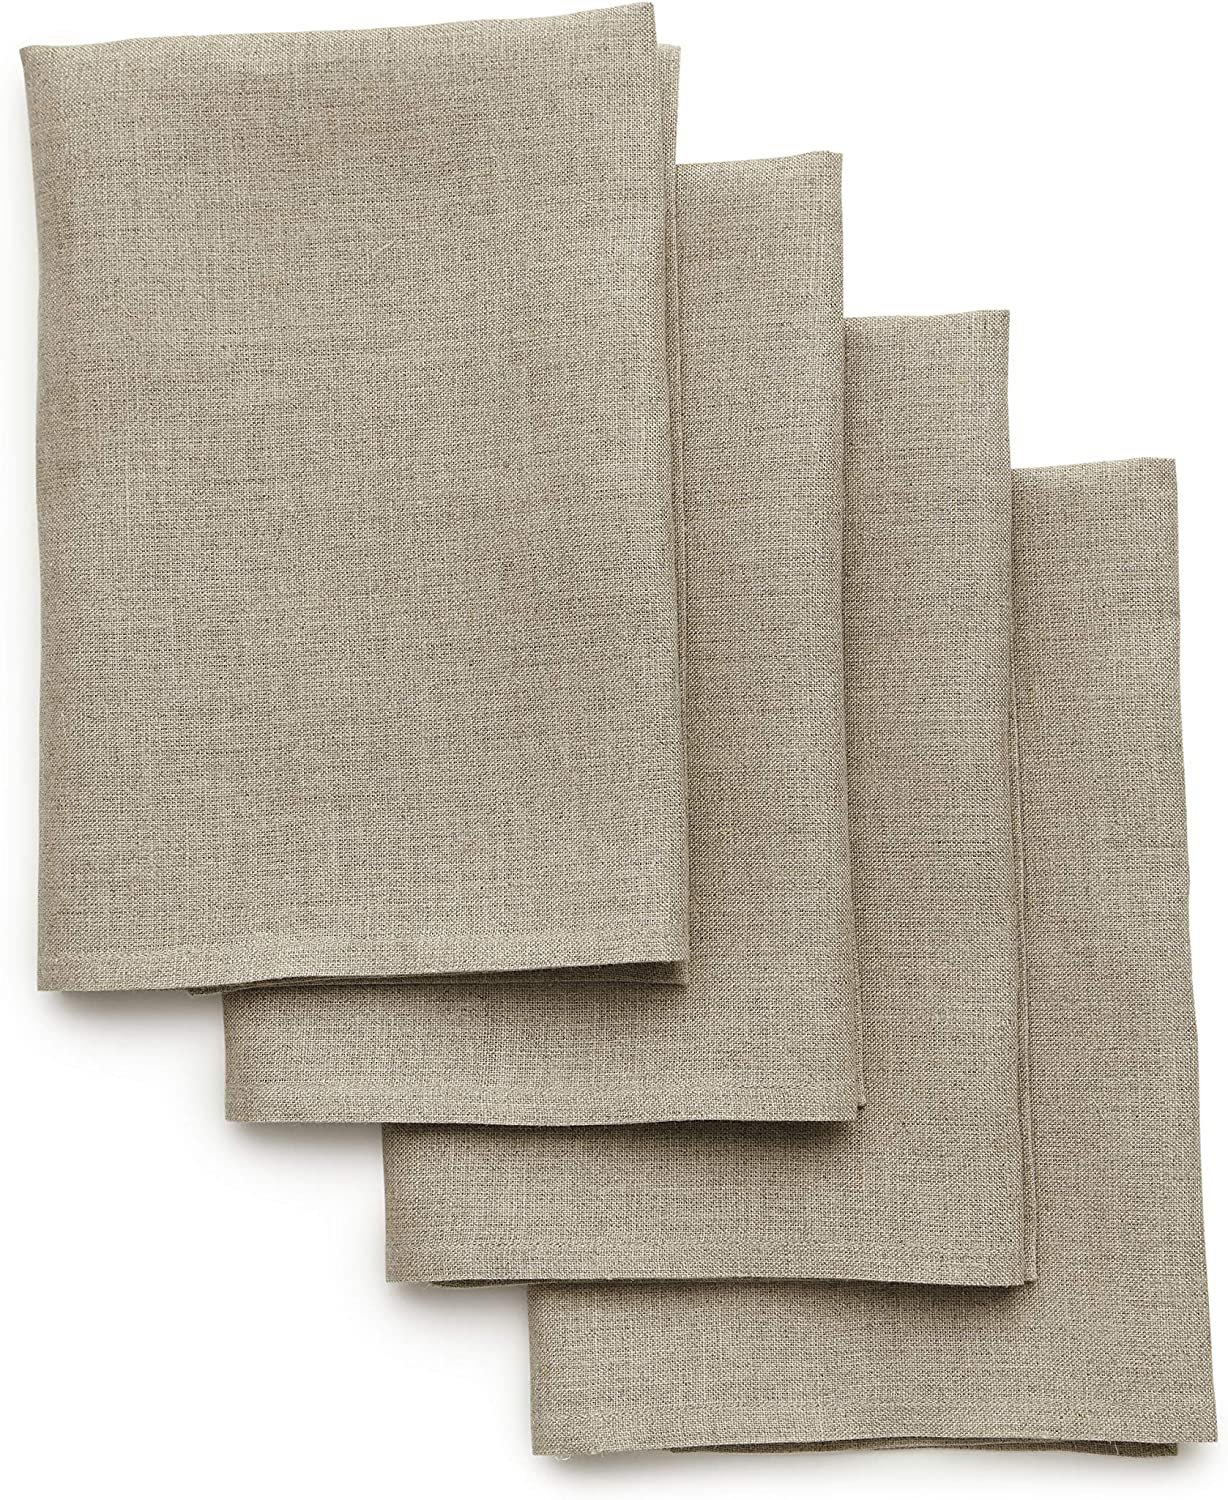 Solino Home 100% Pure Linen Dinner Napkins - 20 x 20 Inch Natural, Set of 4 Linen Napkins, Athena - European Flax, Soft & Handcrafted with Mitered Corners